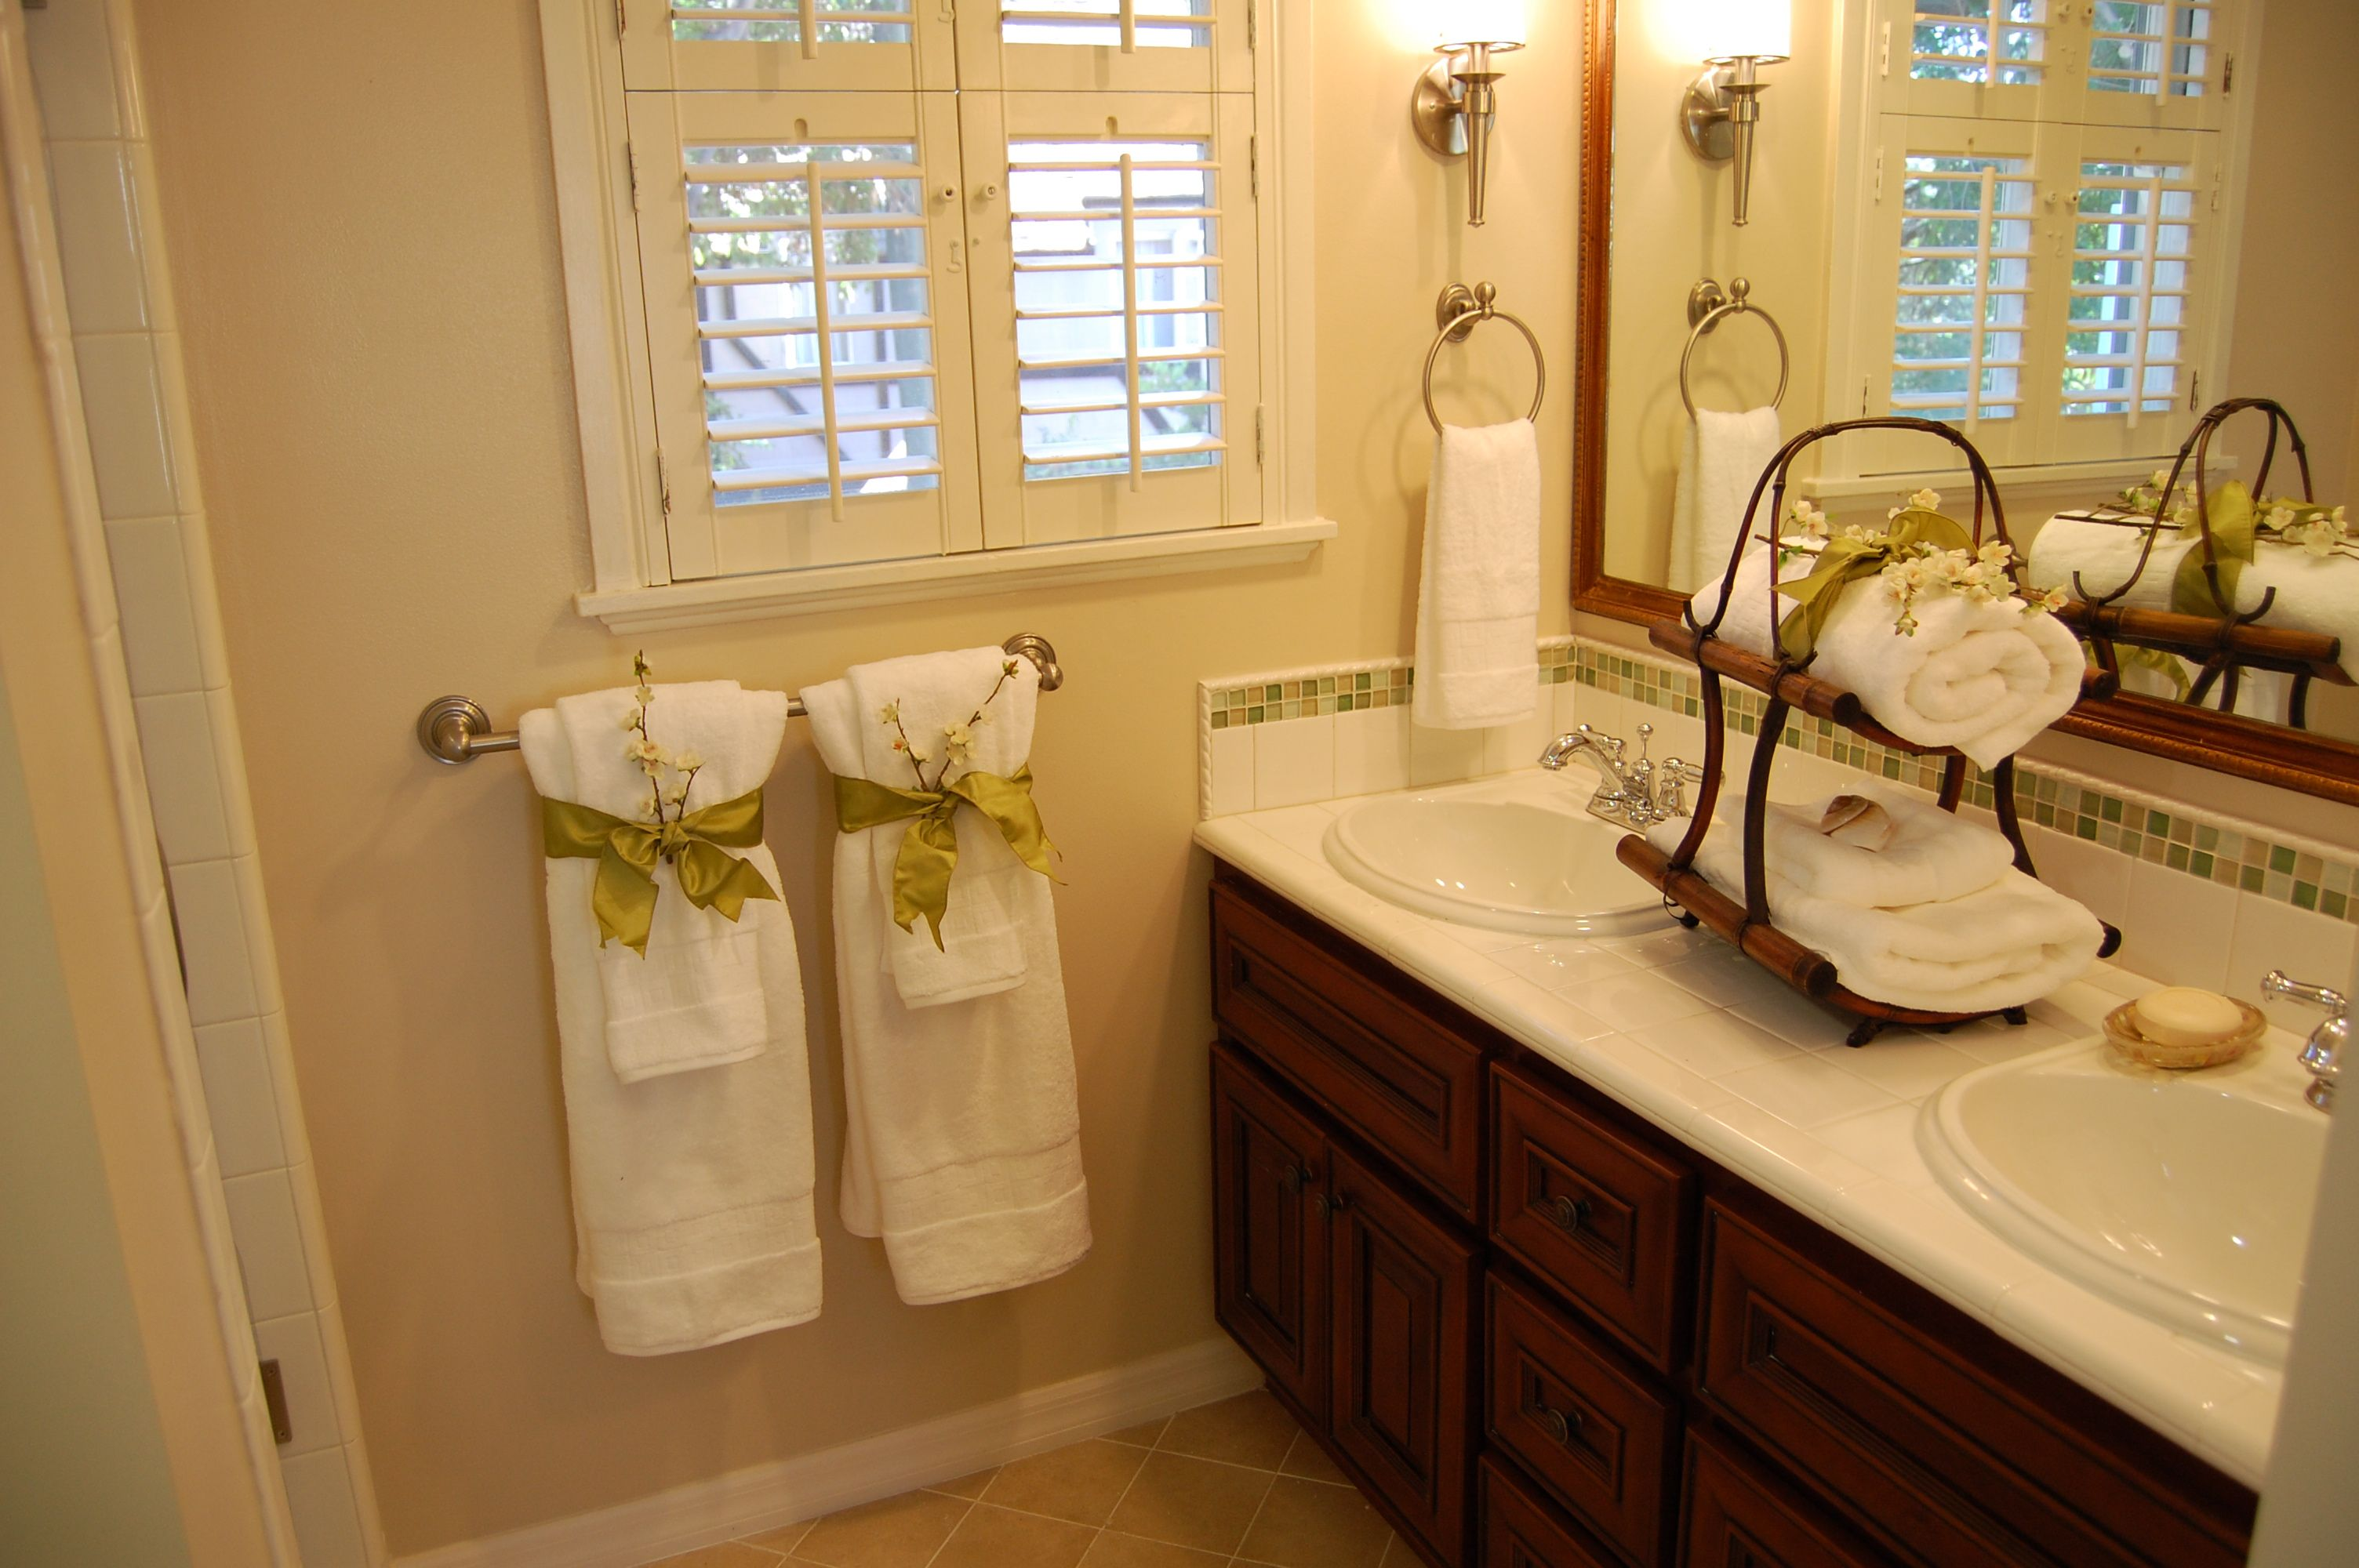 Apartment staging on pinterest 24 pins for Staging bathroom ideas